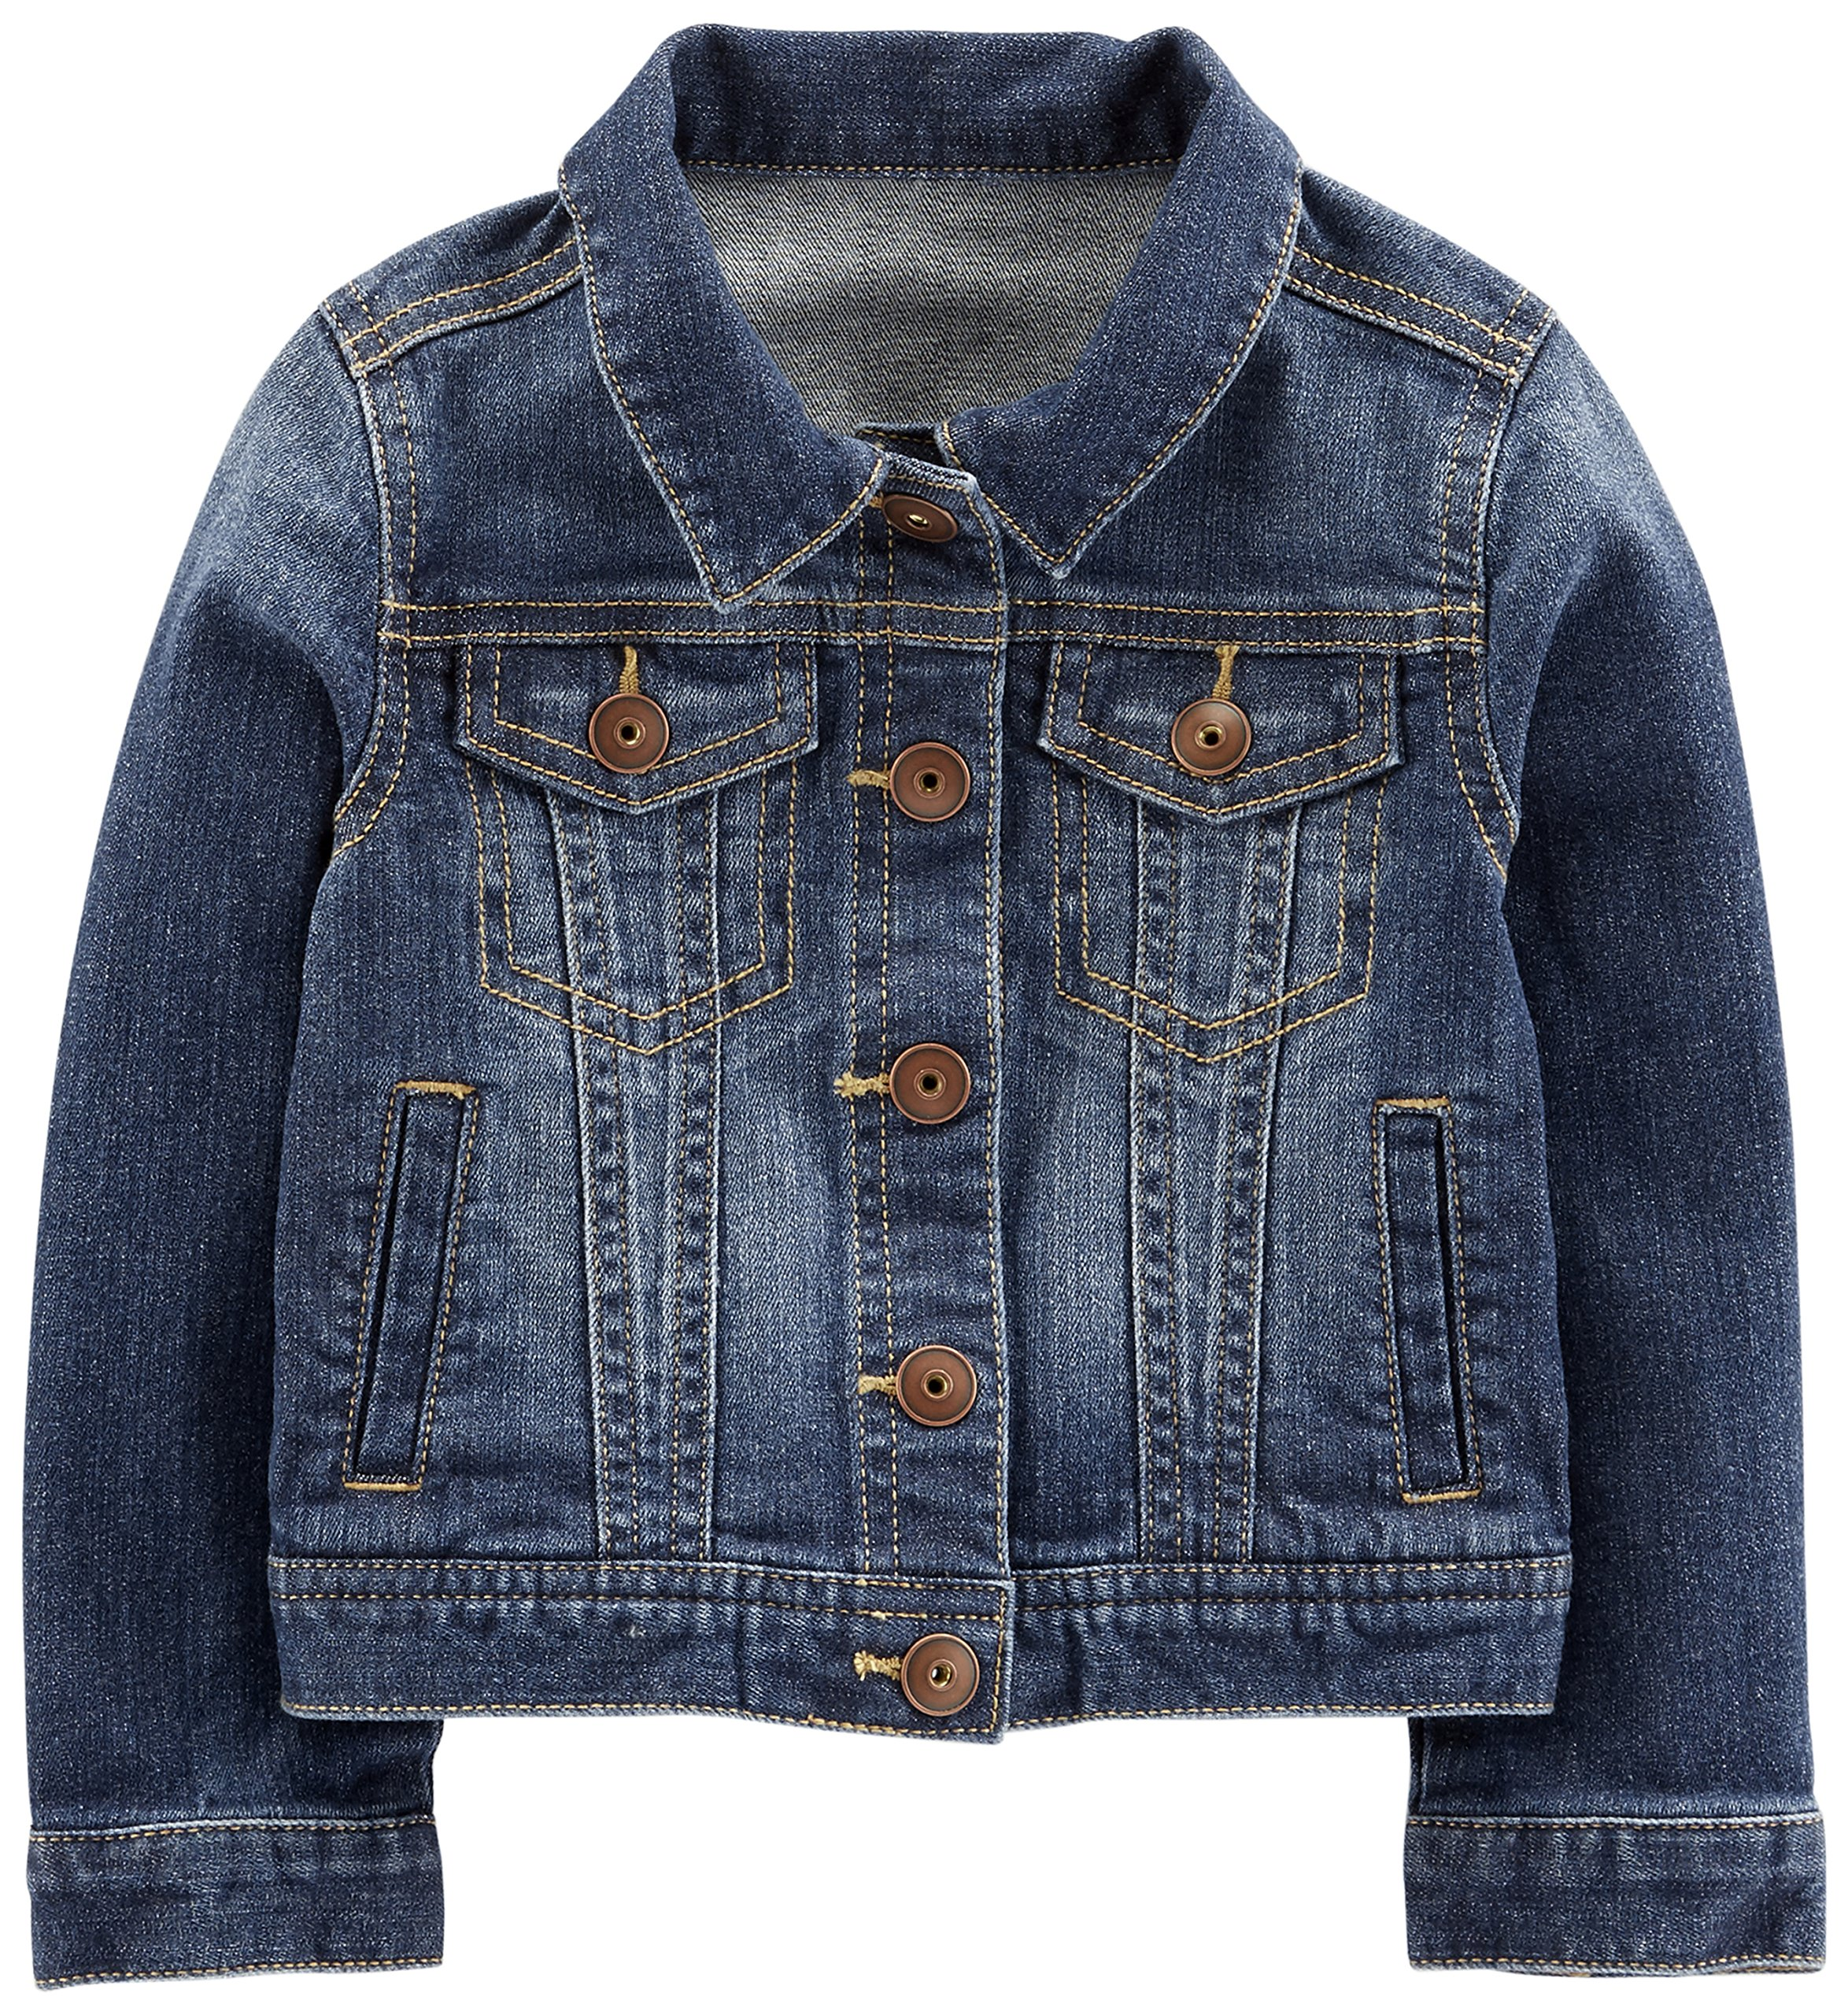 Simple Joys by Carter's Baby Girls' Toddler Denim Jacket, Medium Wash, 4T